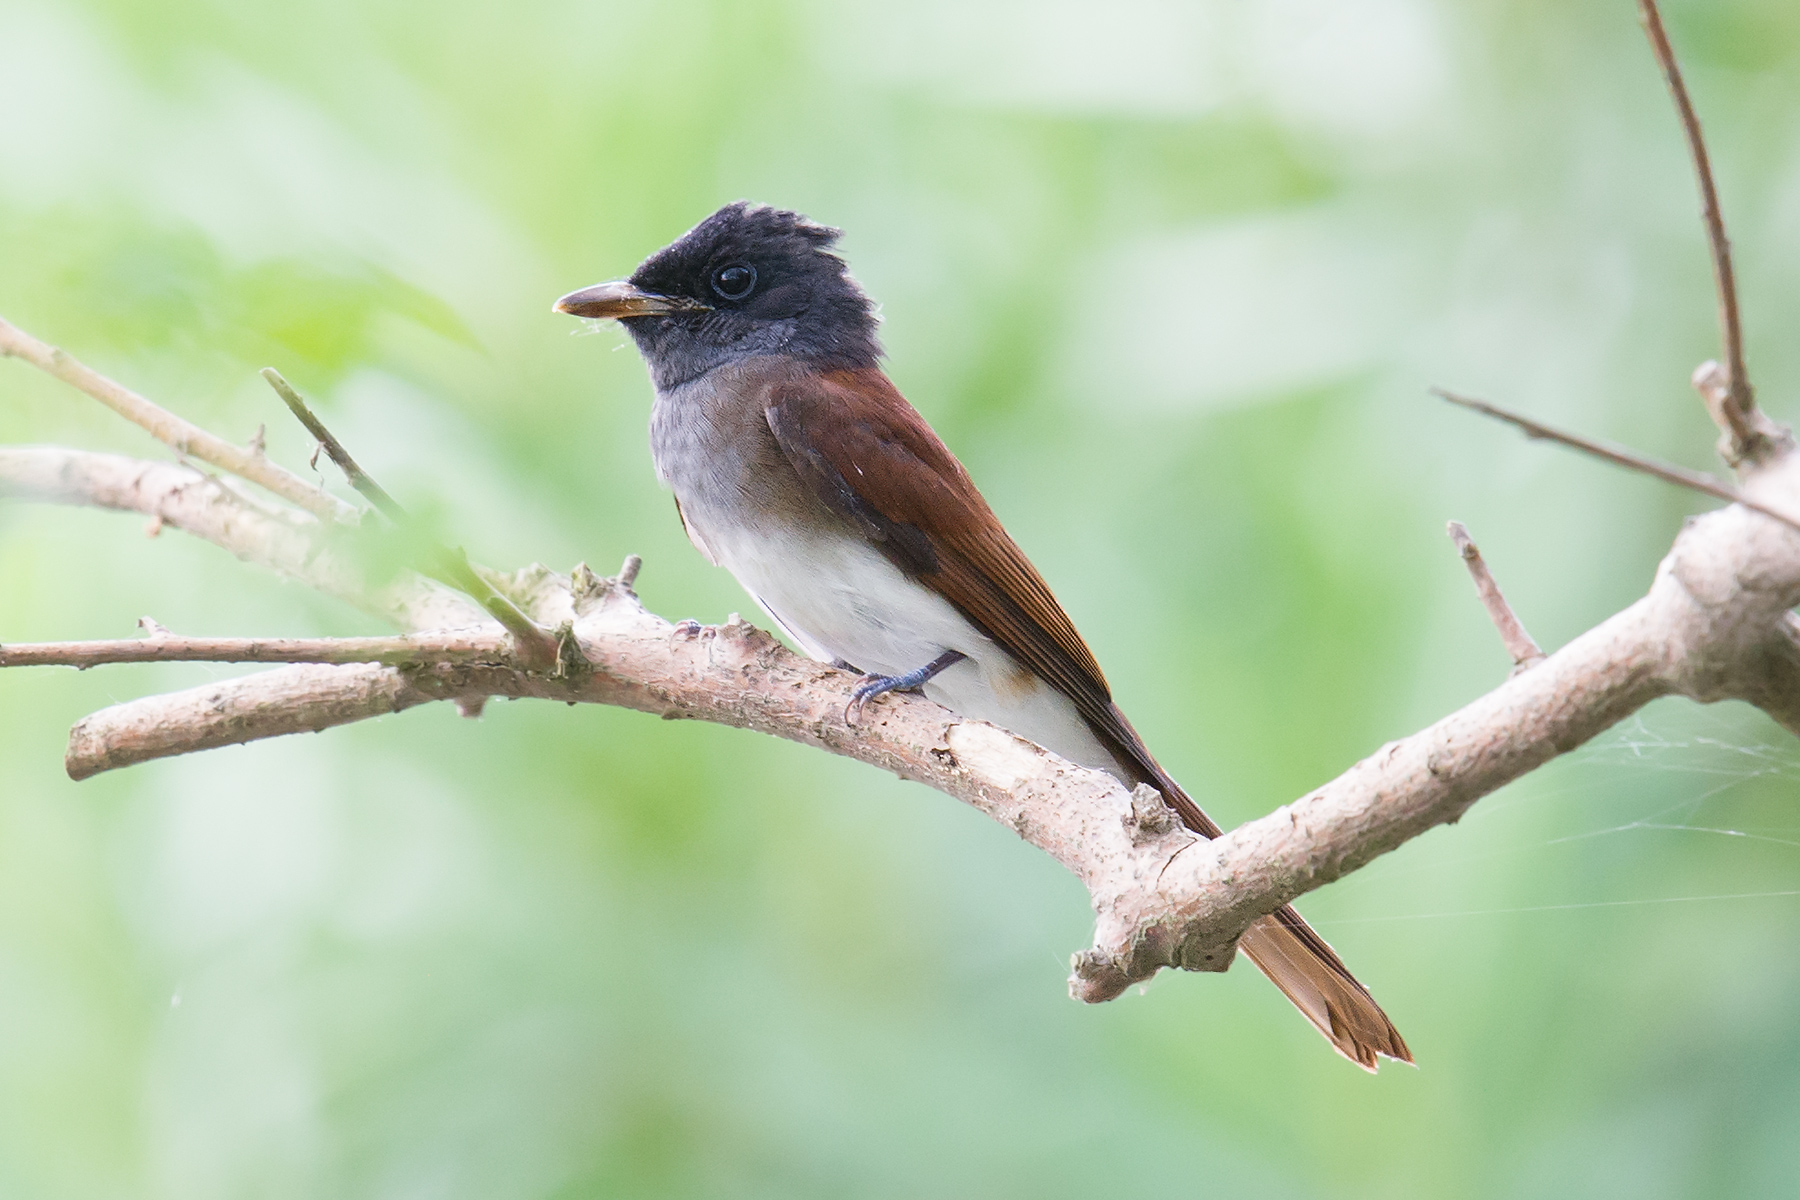 Japanese Paradise Flycatcher, Nanhui, 11 Oct. This is a female showing a clear demarcation between hood and white belly, faint rufous flanks, and a dark mantle showing little rufous coloration. For more on how to ID paradise flycatchers, see our post.